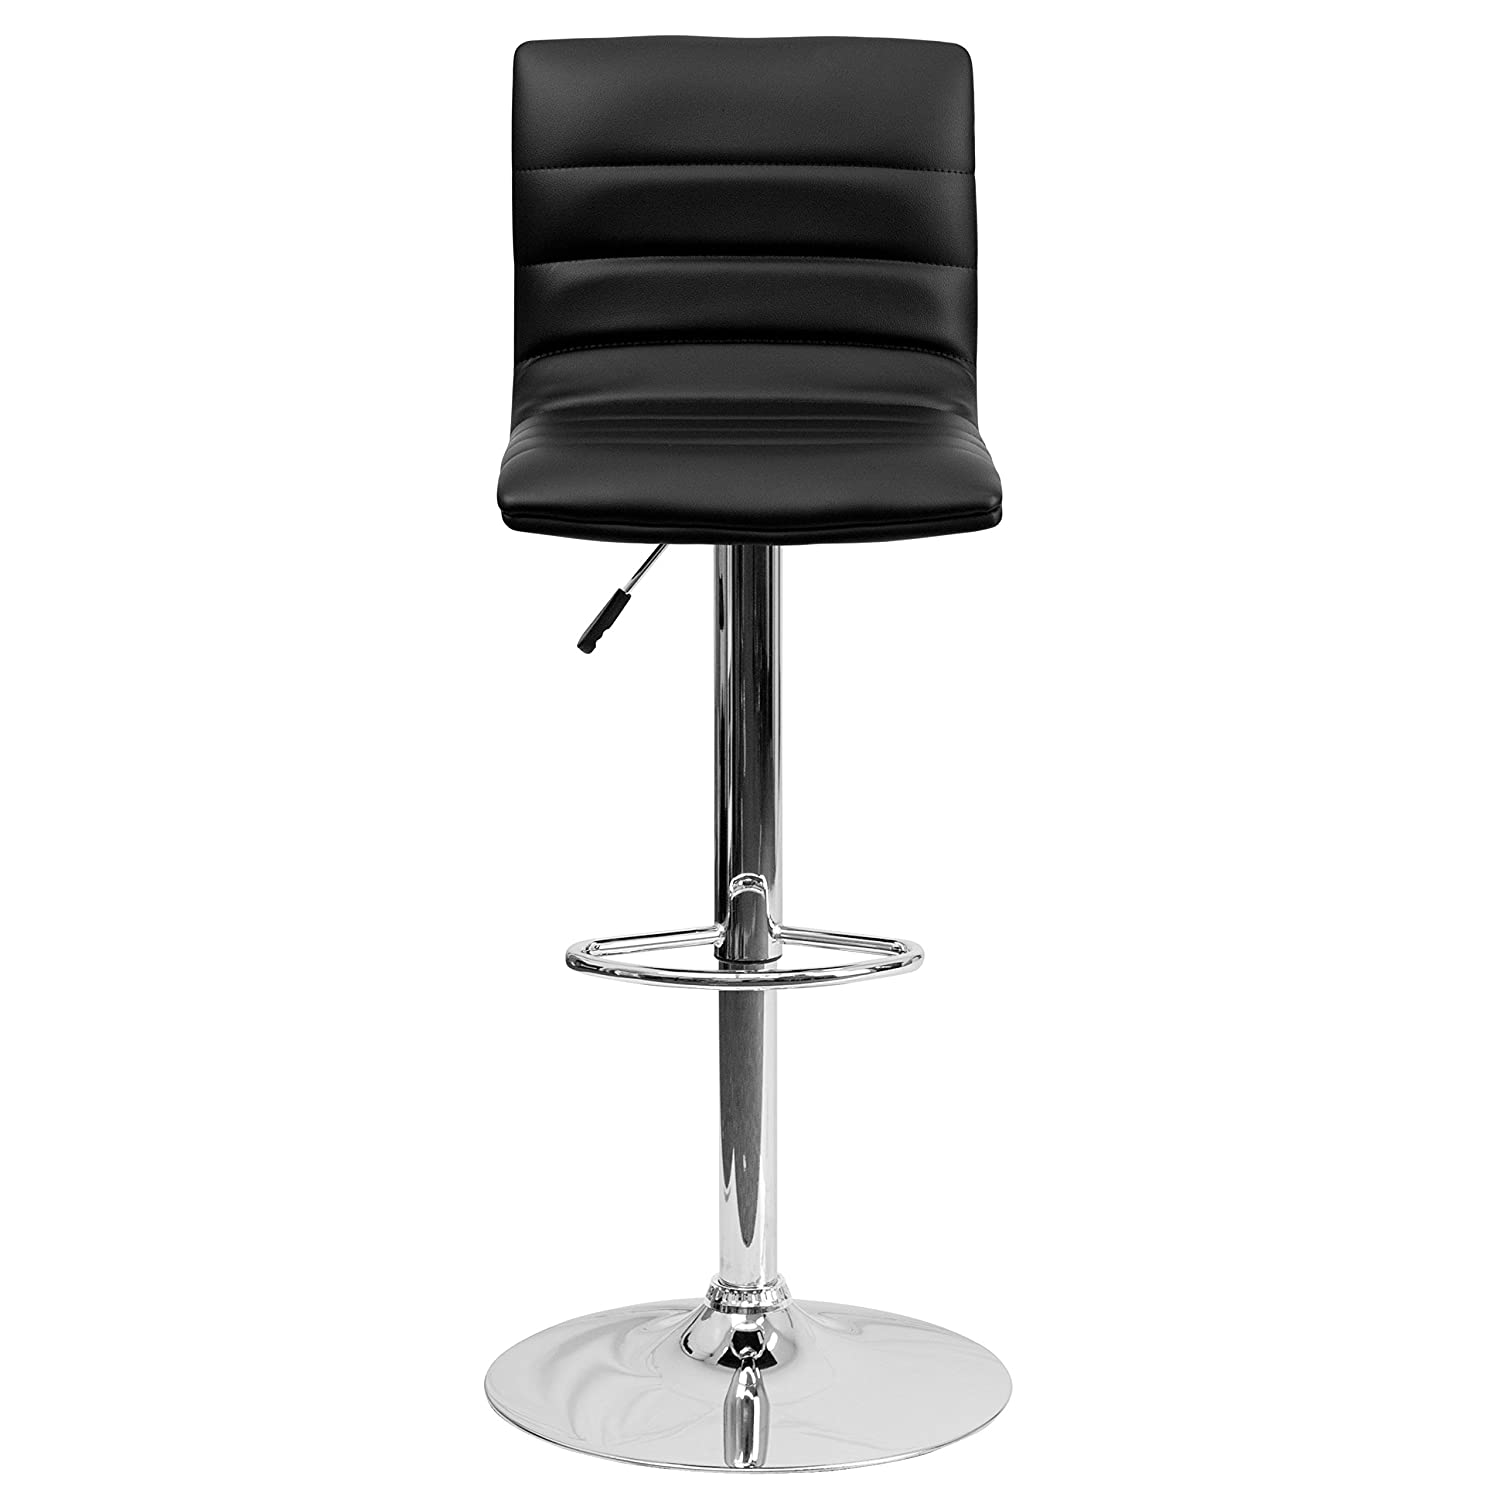 amazoncom flash furniture contemporary black vinyl adjustable  - amazoncom flash furniture contemporary black vinyl adjustable heightbarstool with chrome base kitchen  dining